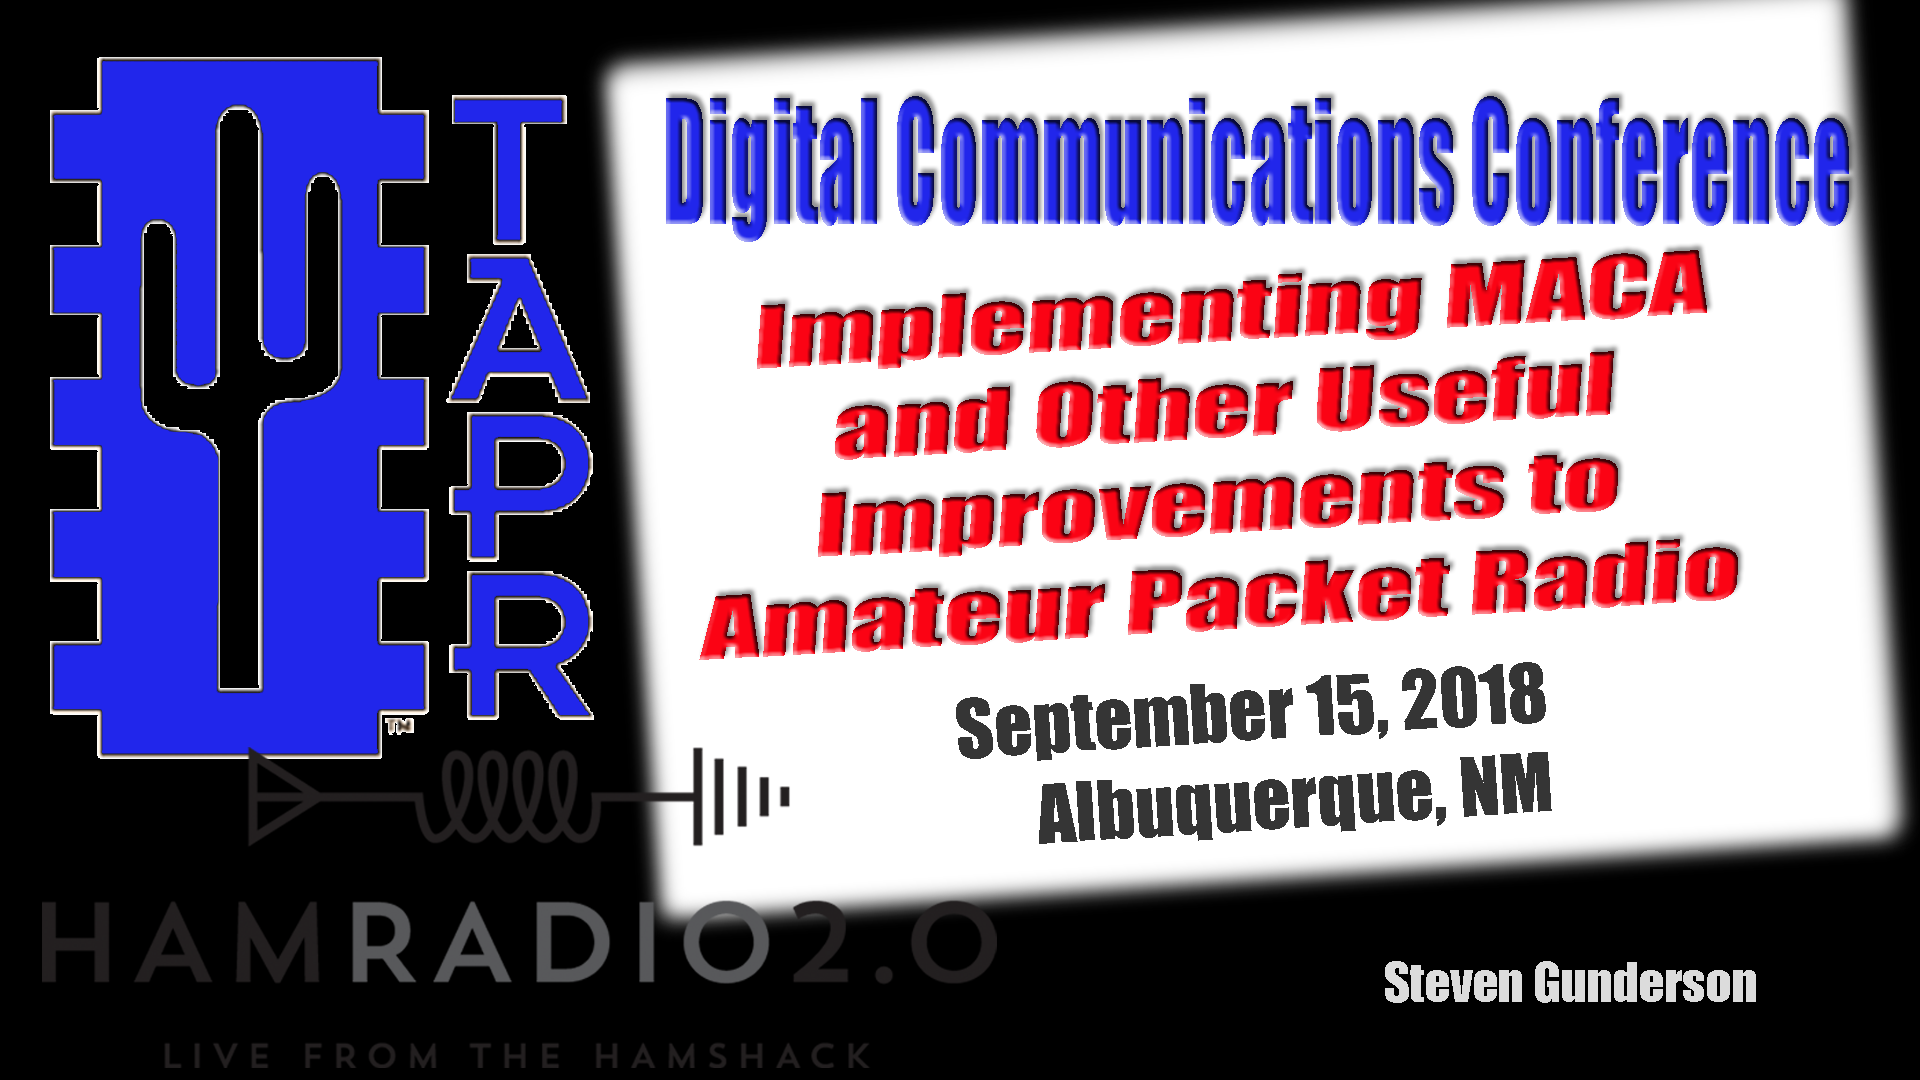 Episode 194: Implementing MACA and Other Useful Improvements to Amateur Packet Radio